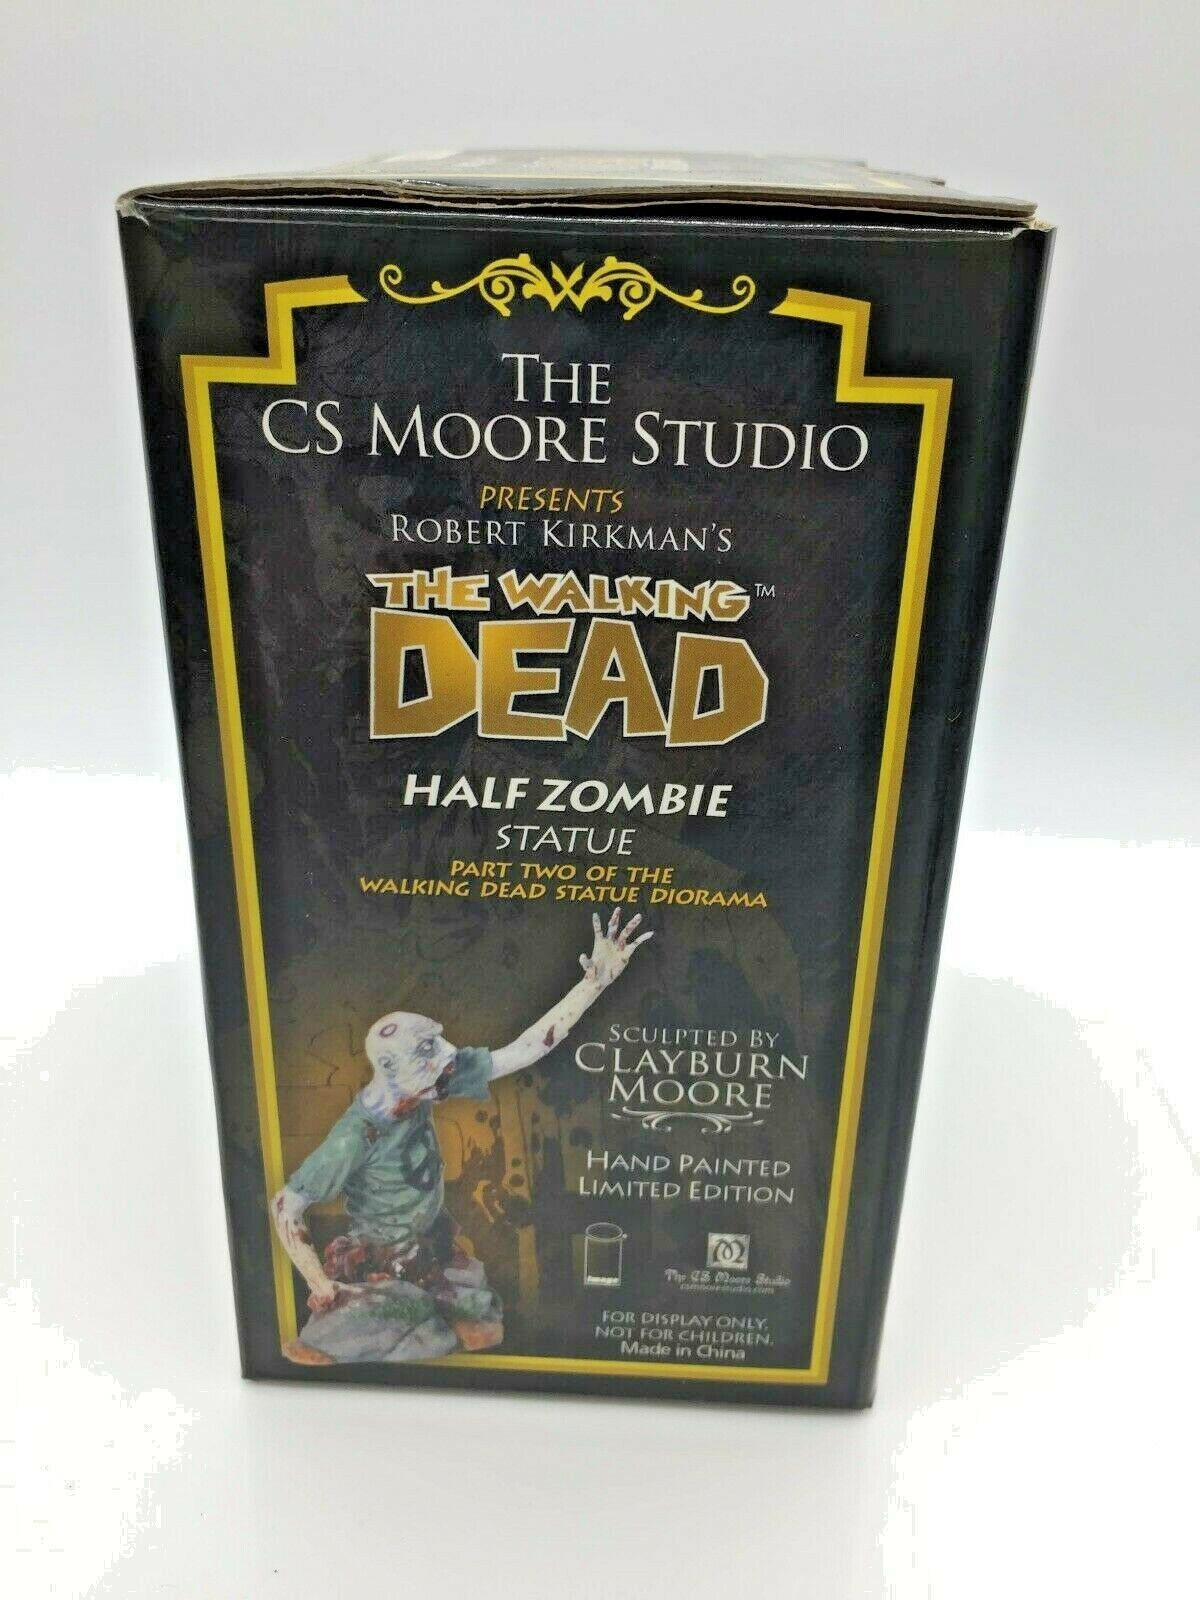 punto de venta The Walking Dead Dead Dead  la mitad Zombie estatua  299 de 1000 Gráfico Novel Cs Moore Studio  100% autentico